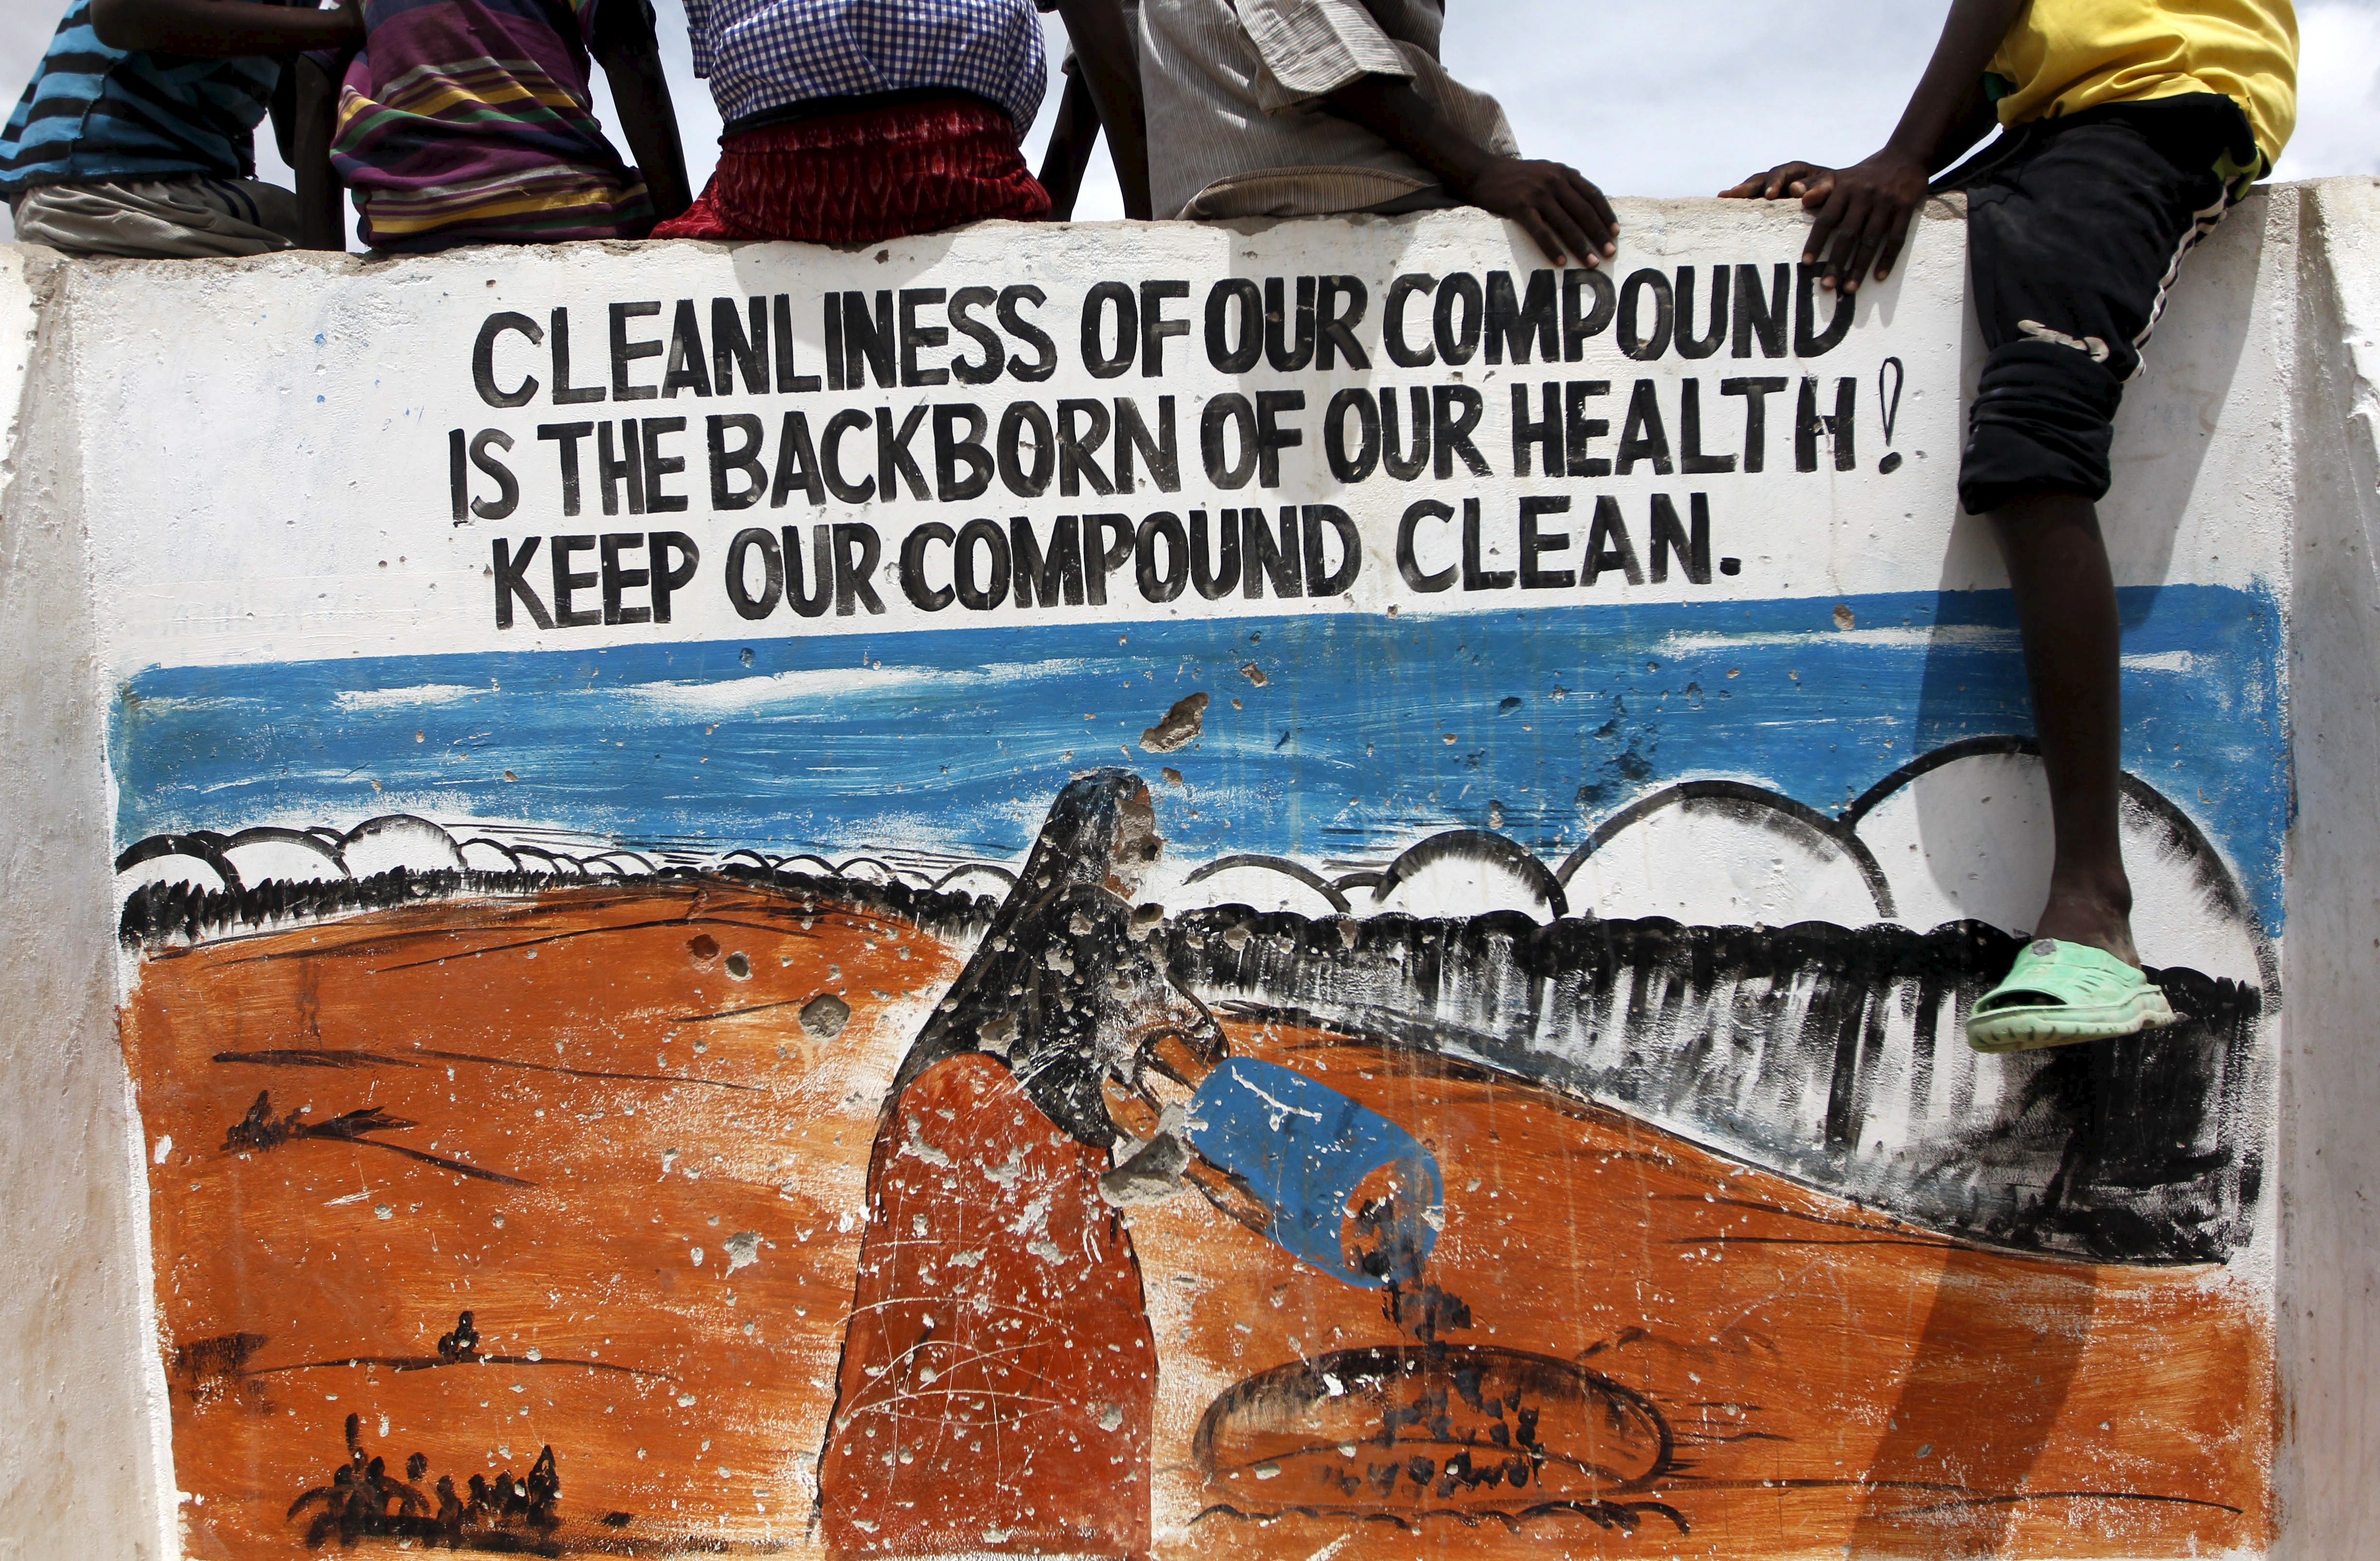 Refugees sit on a wall with a mural on hygiene at the Ifo camp in Dadaab near the Kenya-Somalia border on May 8, 2015. Photo by Thomas Mukoya/Reuters